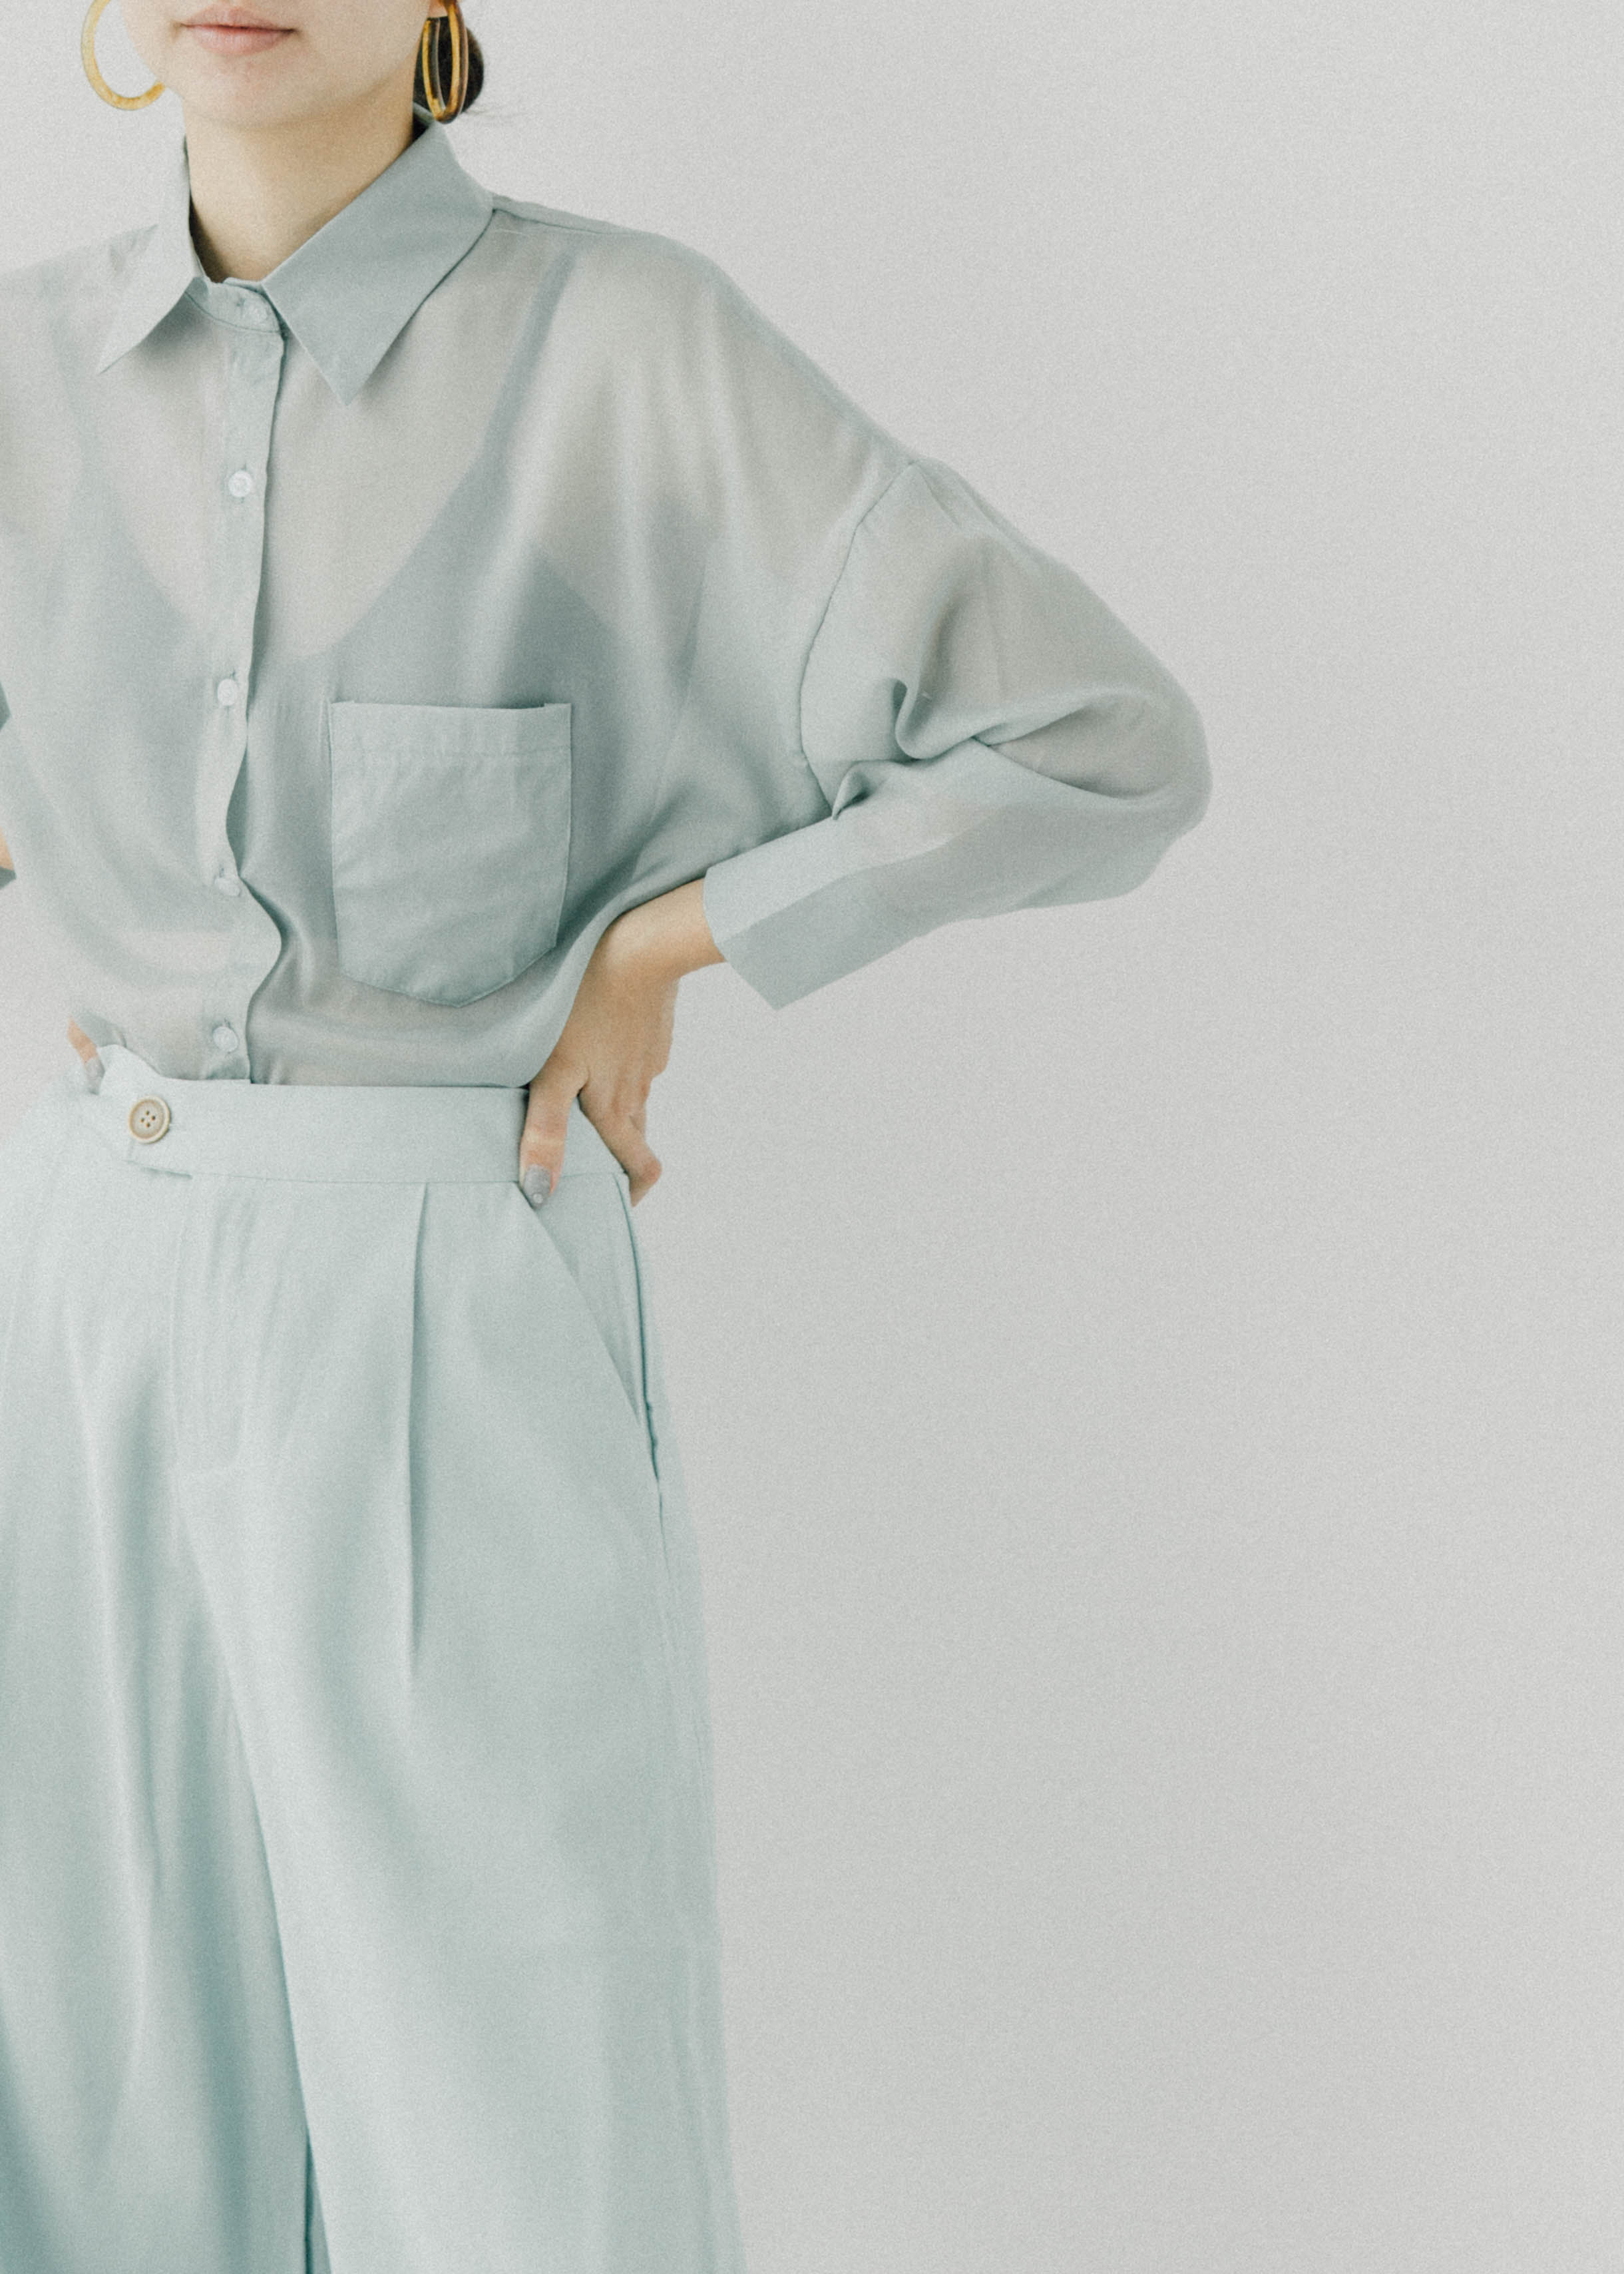 Loose sun protection shirt coat in mint green